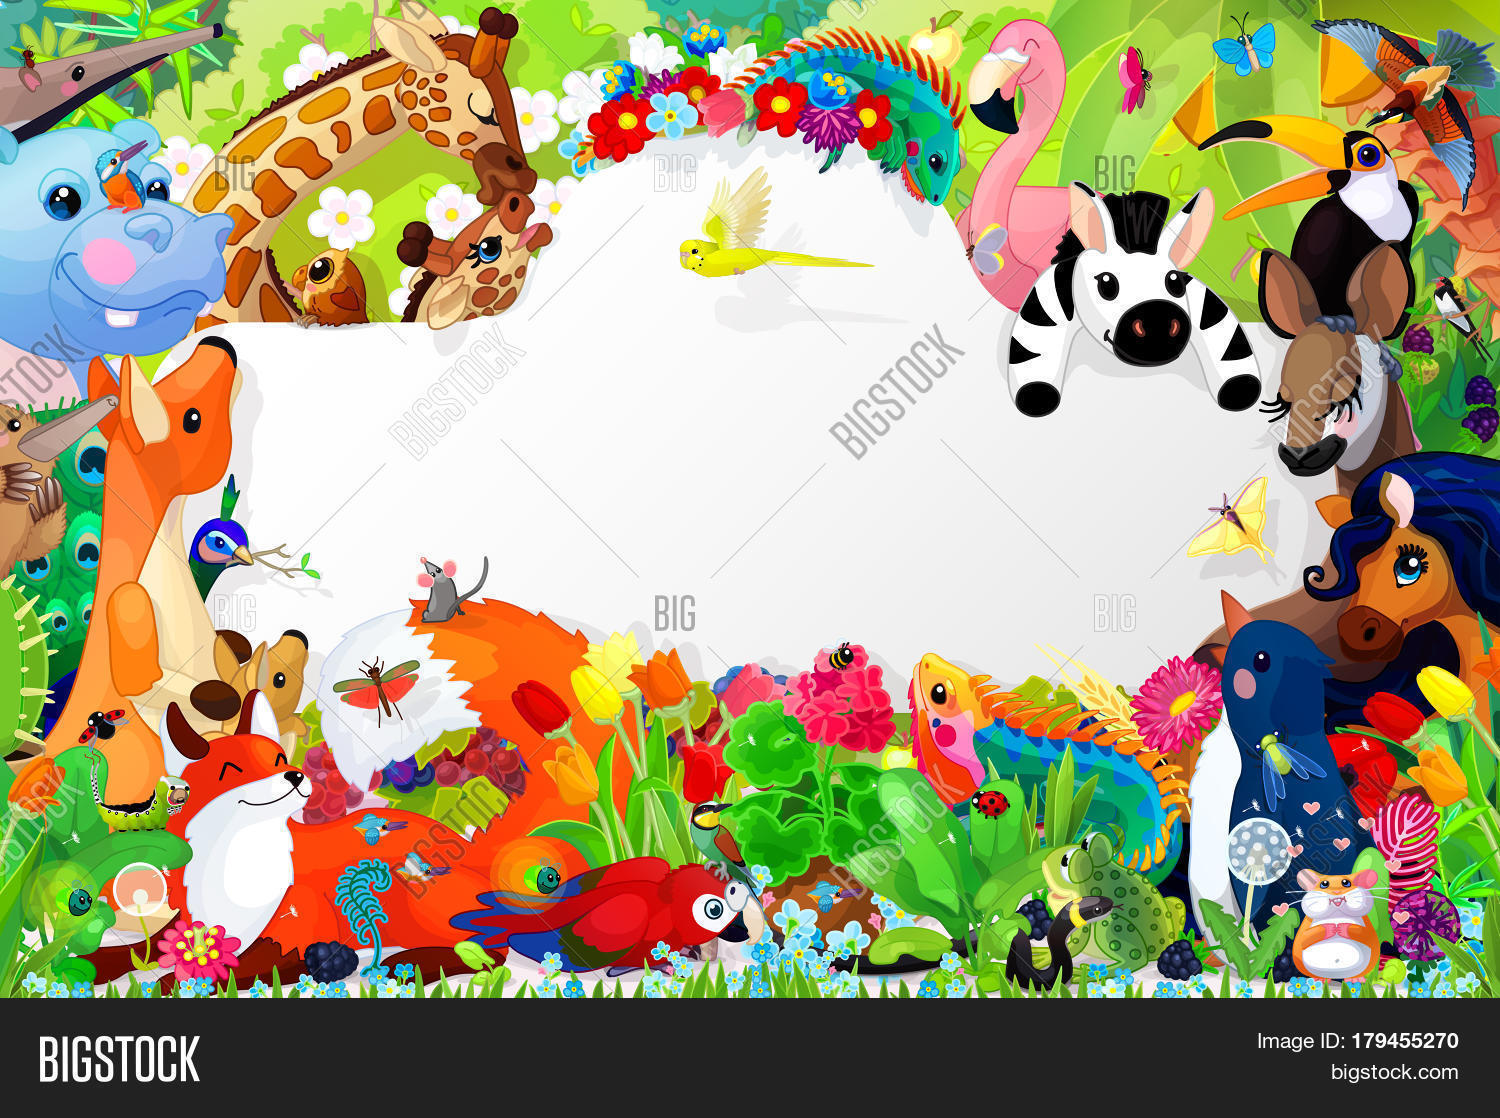 Book Cover Page Design For Kids ~ Cartoon animals book cover template image photo bigstock